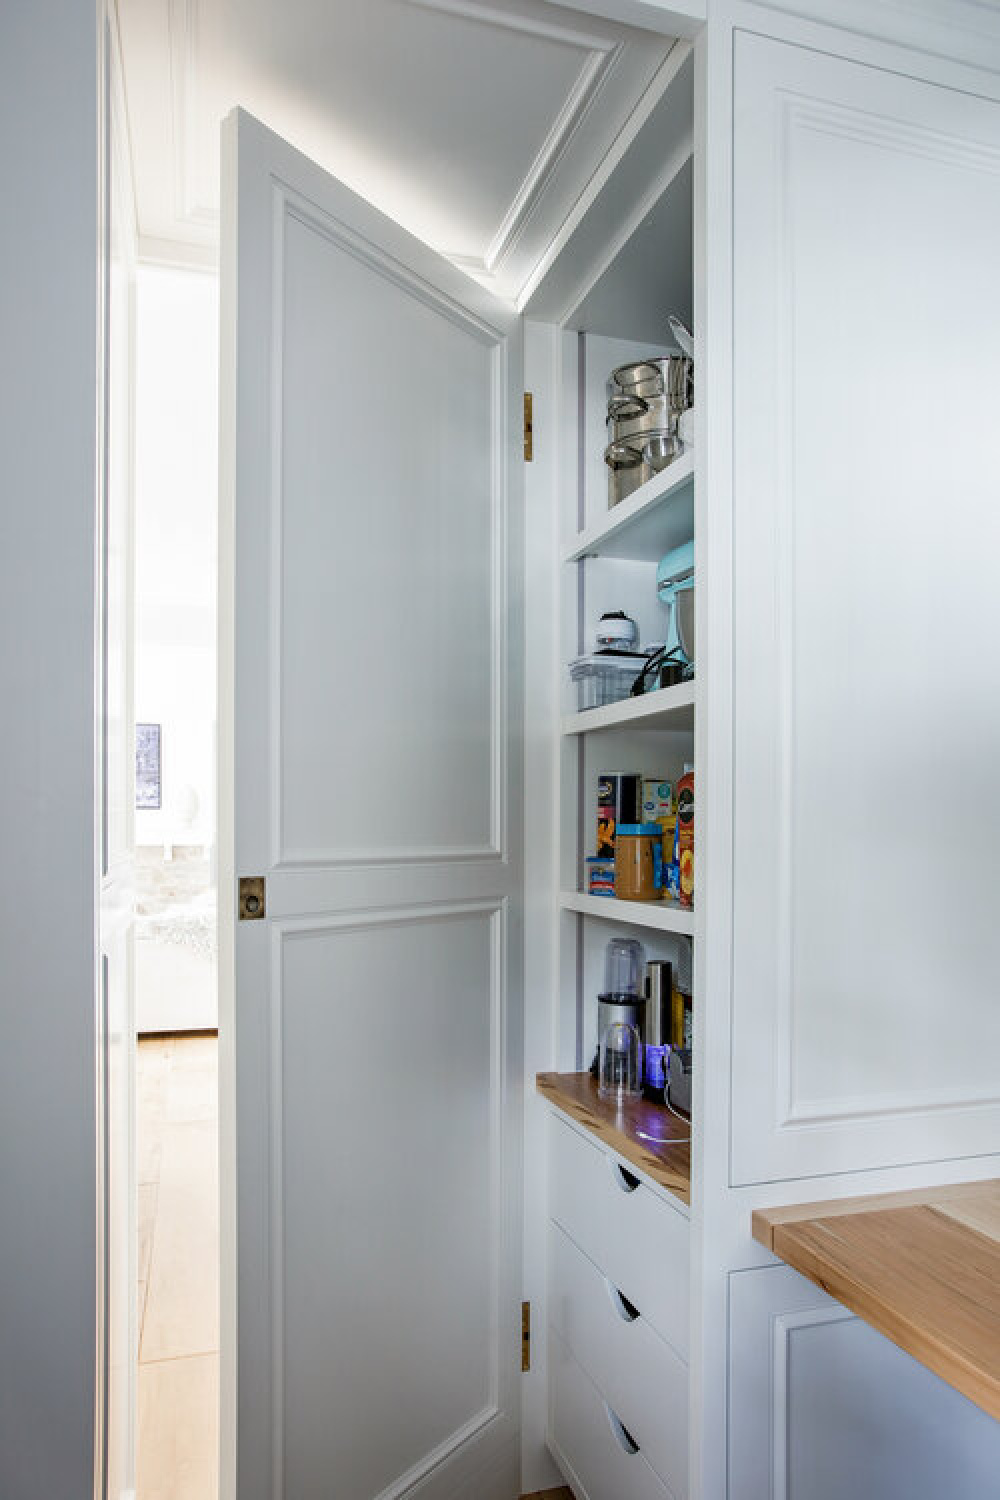 Detail of interior of a pantry in a classic white kitchen by Edward Deegan Architects. Find more blue kitchen ideas in this story!